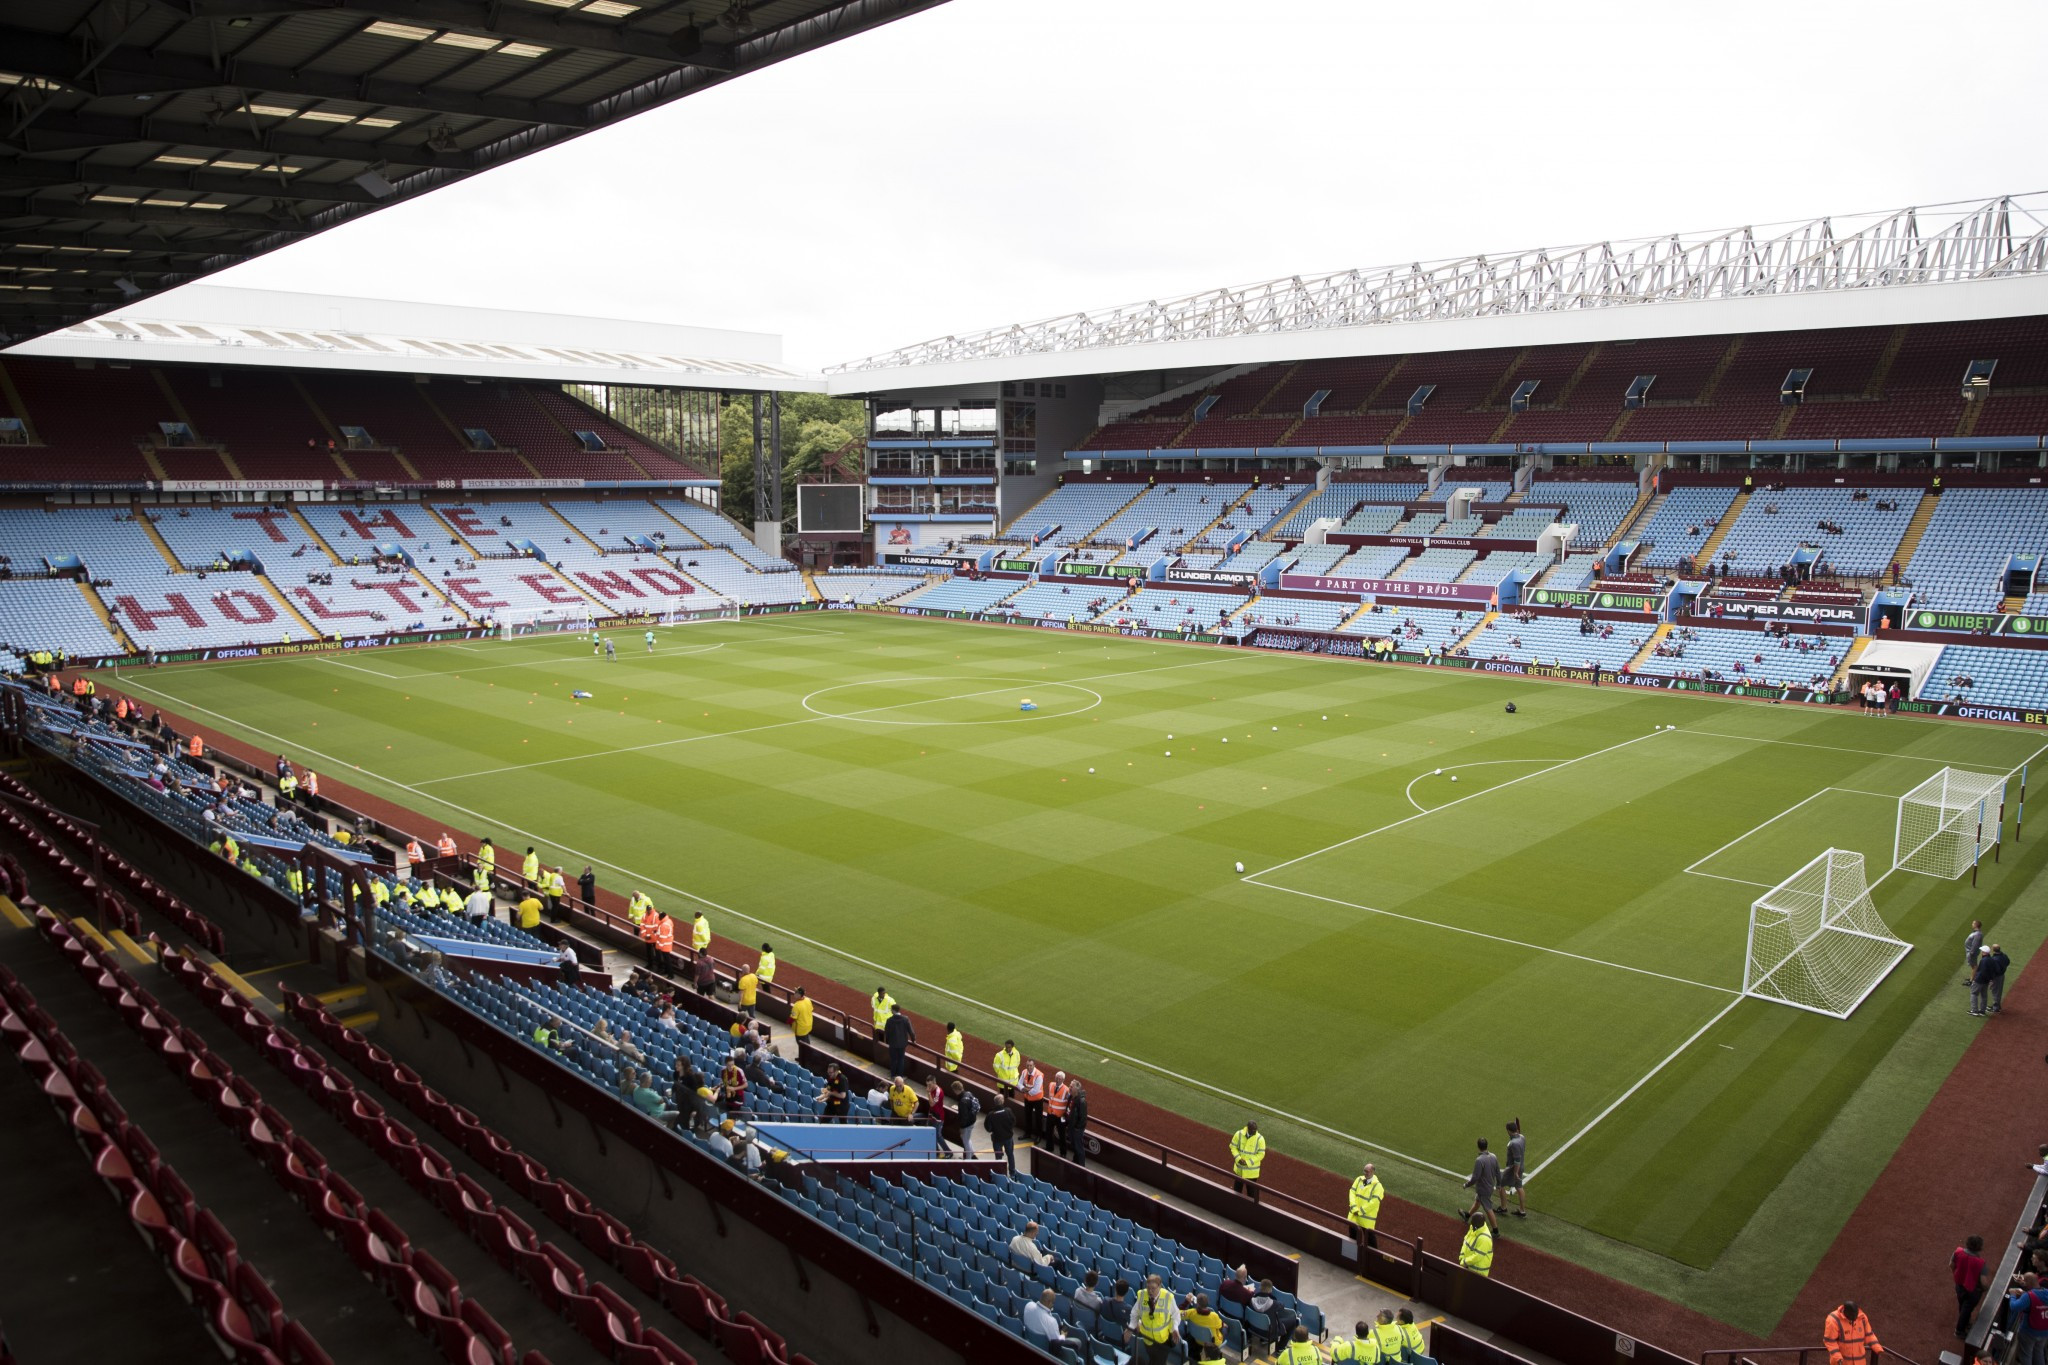 Aston Villa chief executive gives backing to Birmingham 2022 bid